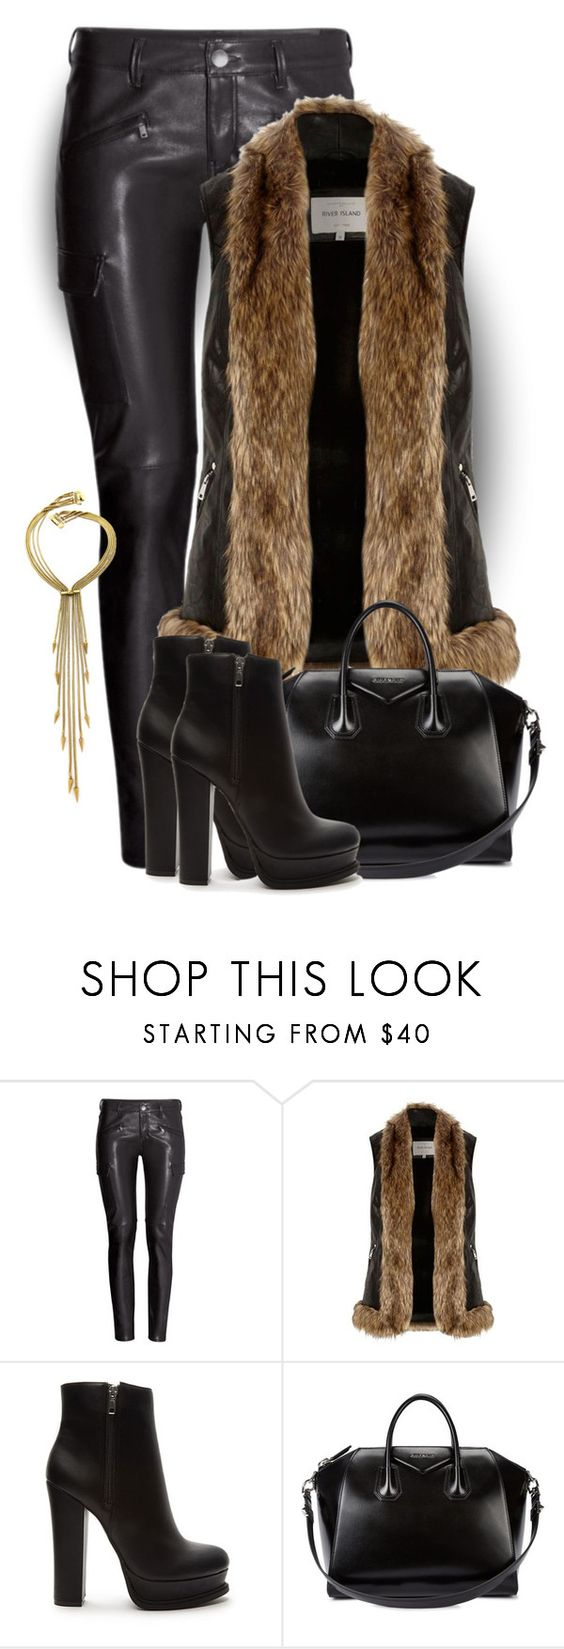 """""""Katt #2525"""" by gaburrus ❤ liked on Polyvore featuring H&M, River Island, Forever 21, Givenchy and Fallon"""